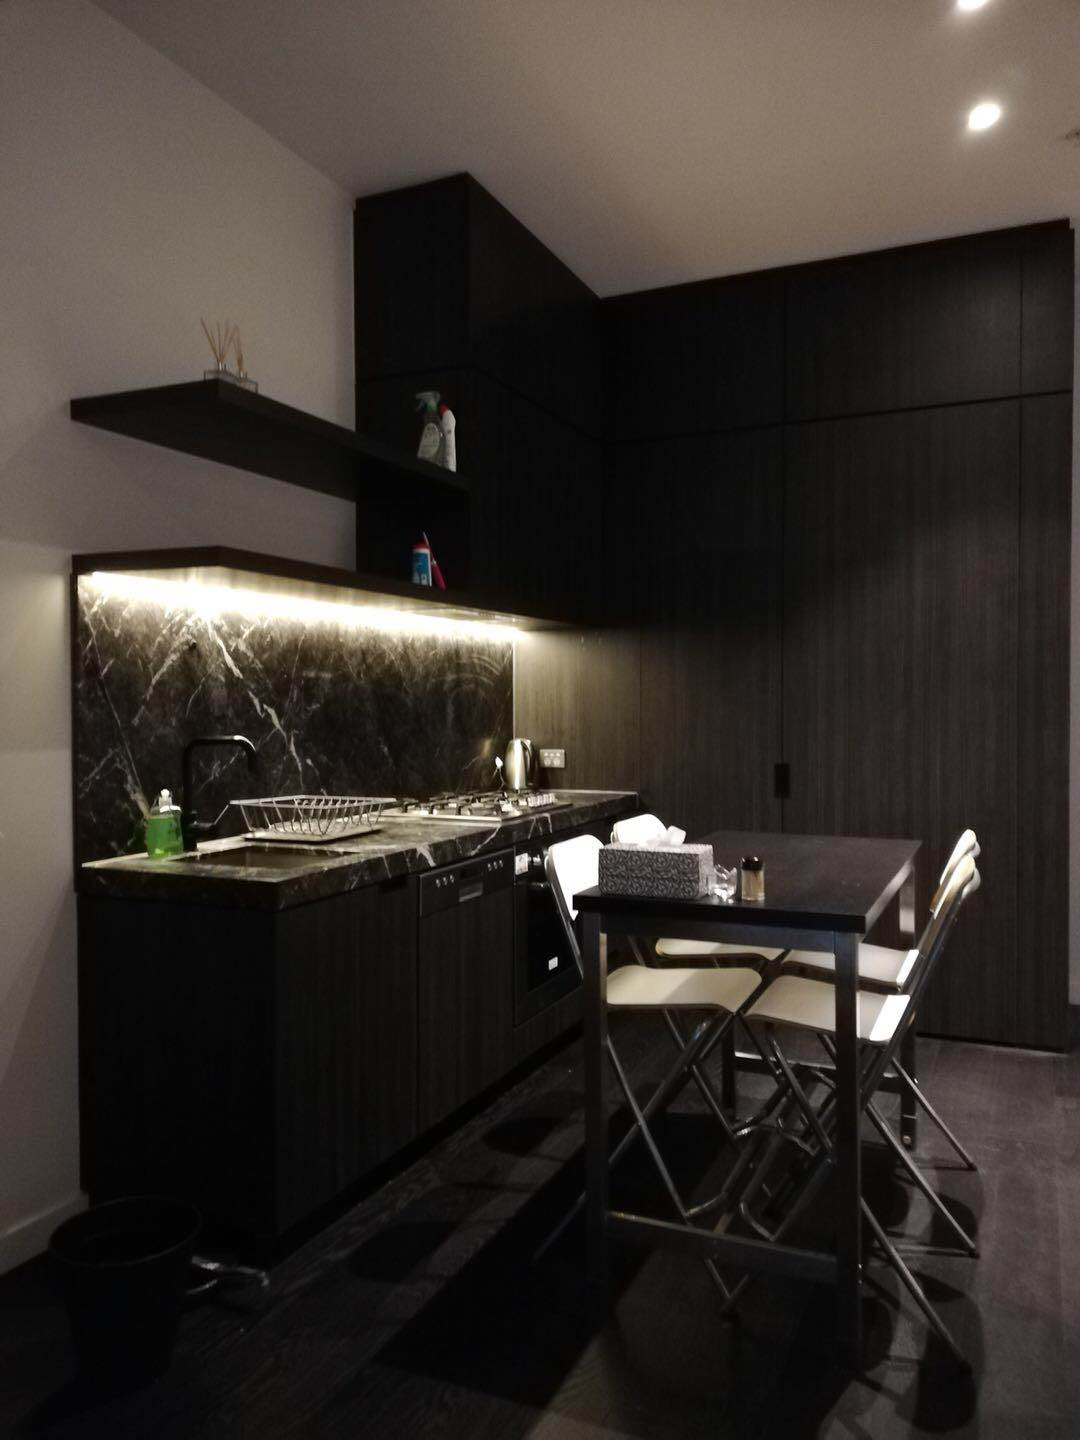 A Fully Furnished apartment located in the best spot in North Melbourne